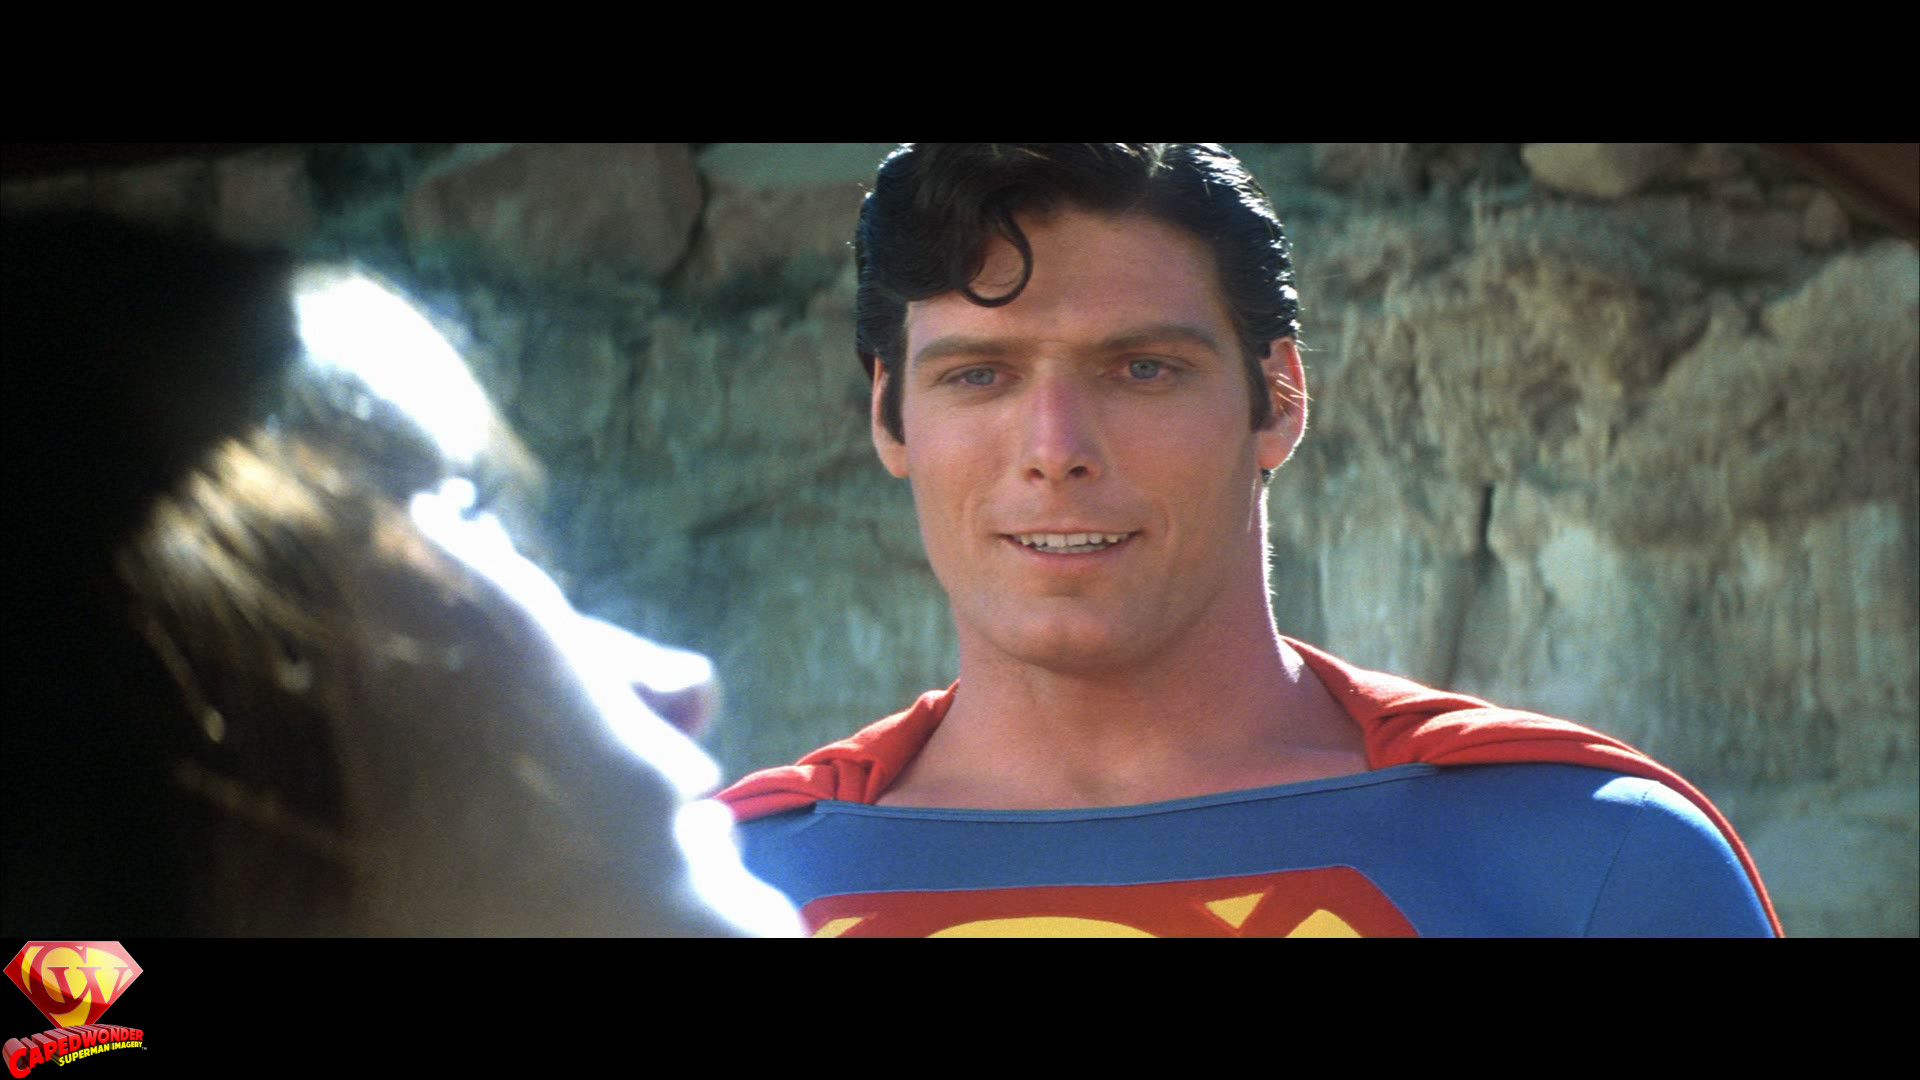 Christopher Reeve Superman Wallpaper (69+ images)